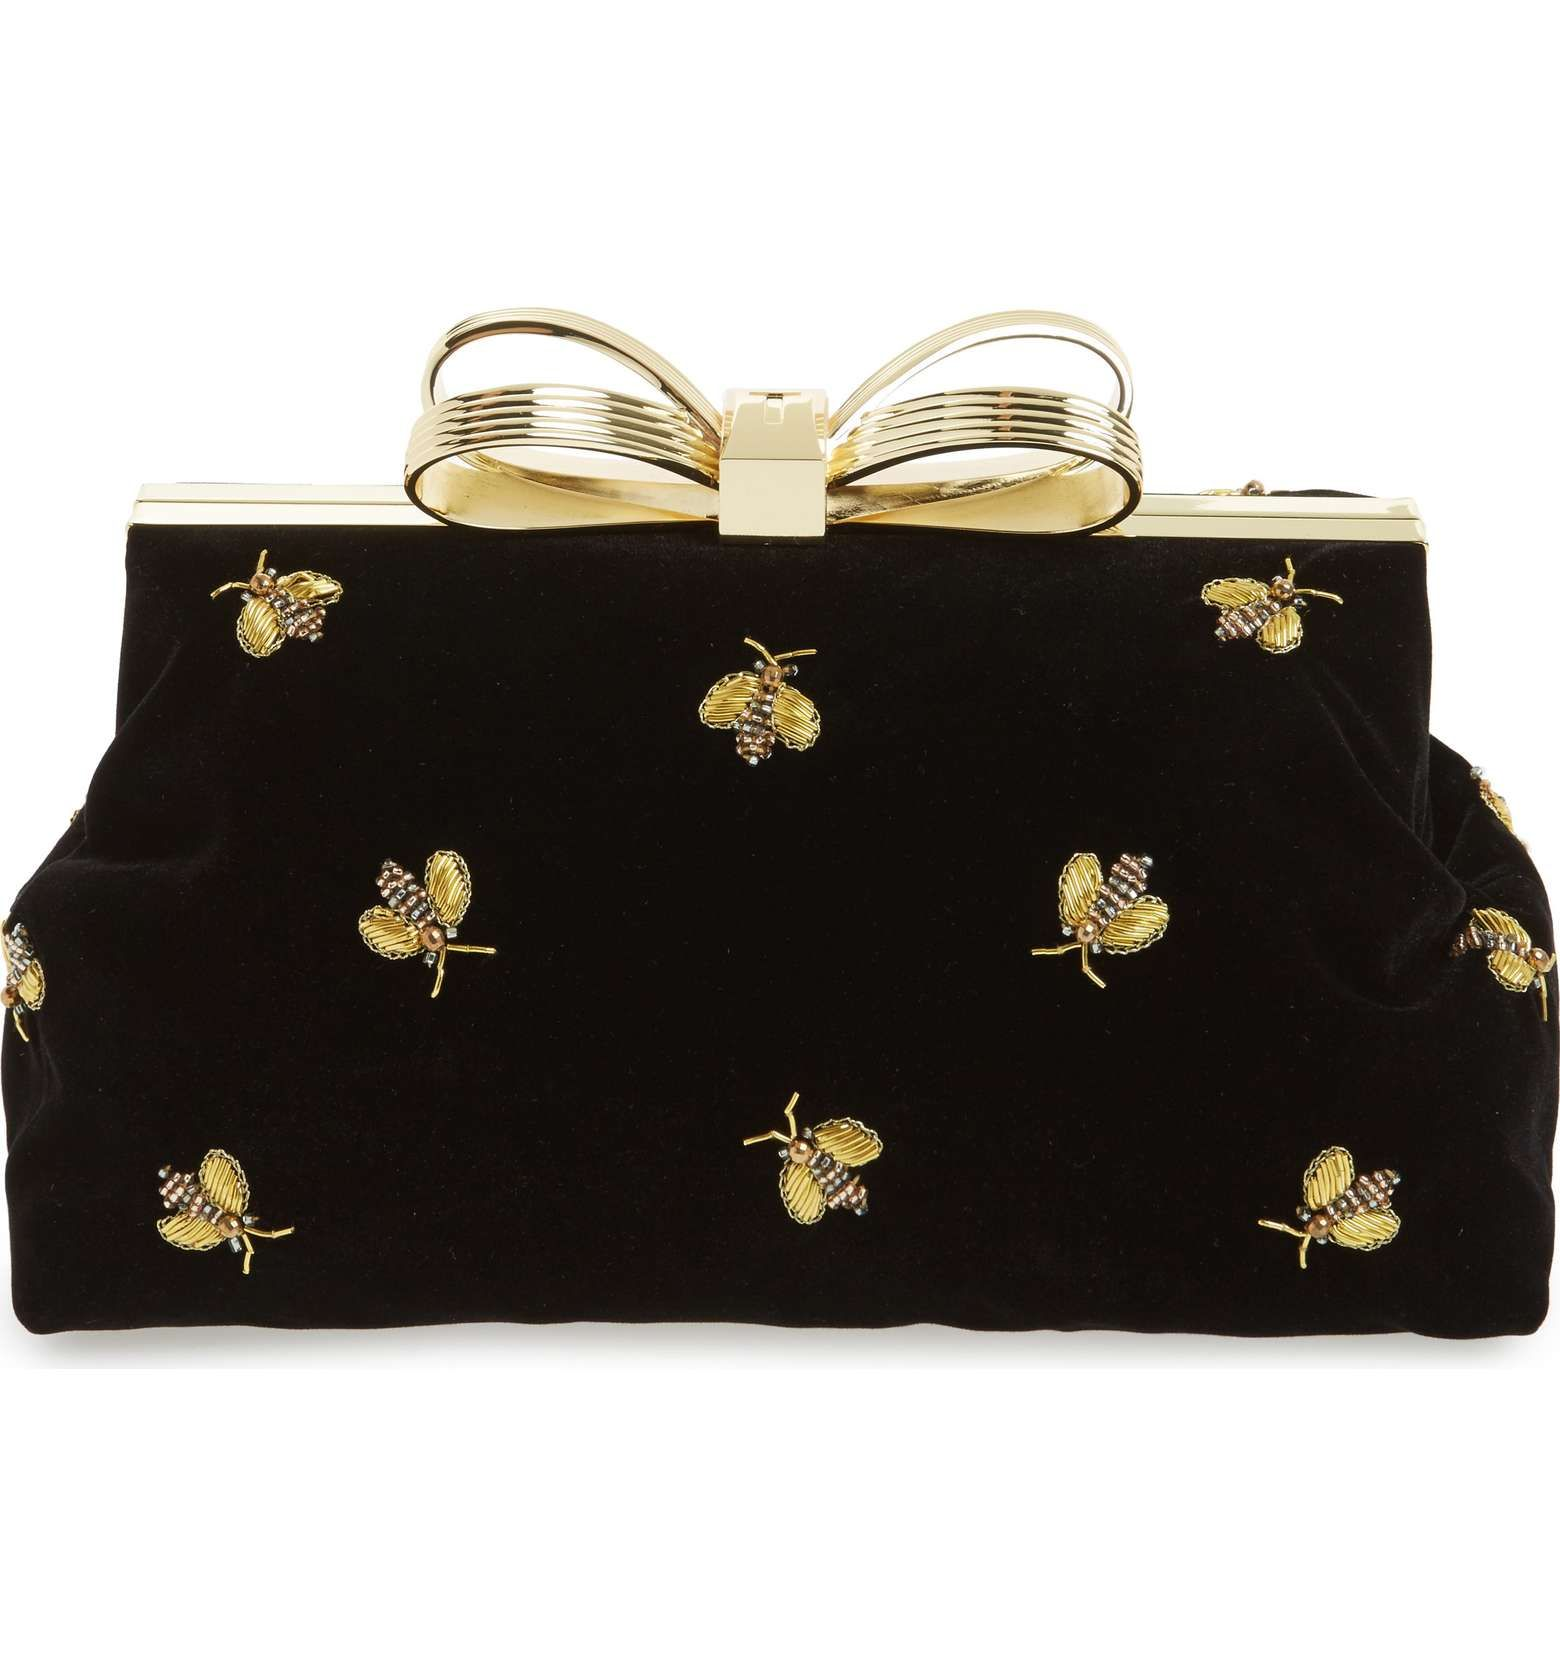 0bbd789161d423 Ted Baker bee clutch